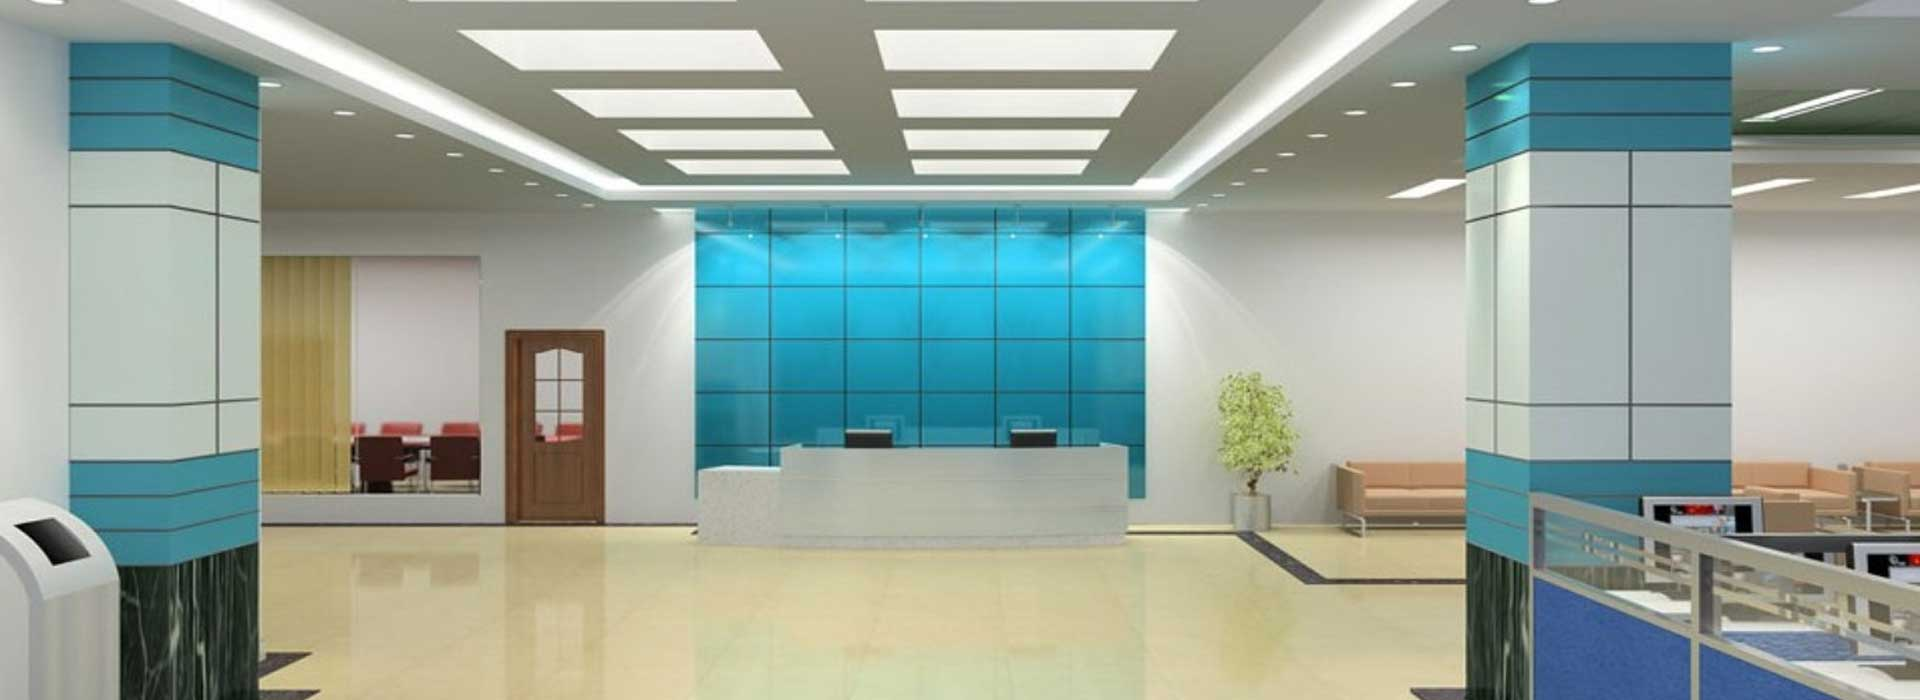 Office Building Interiors By Jaipur Interiors